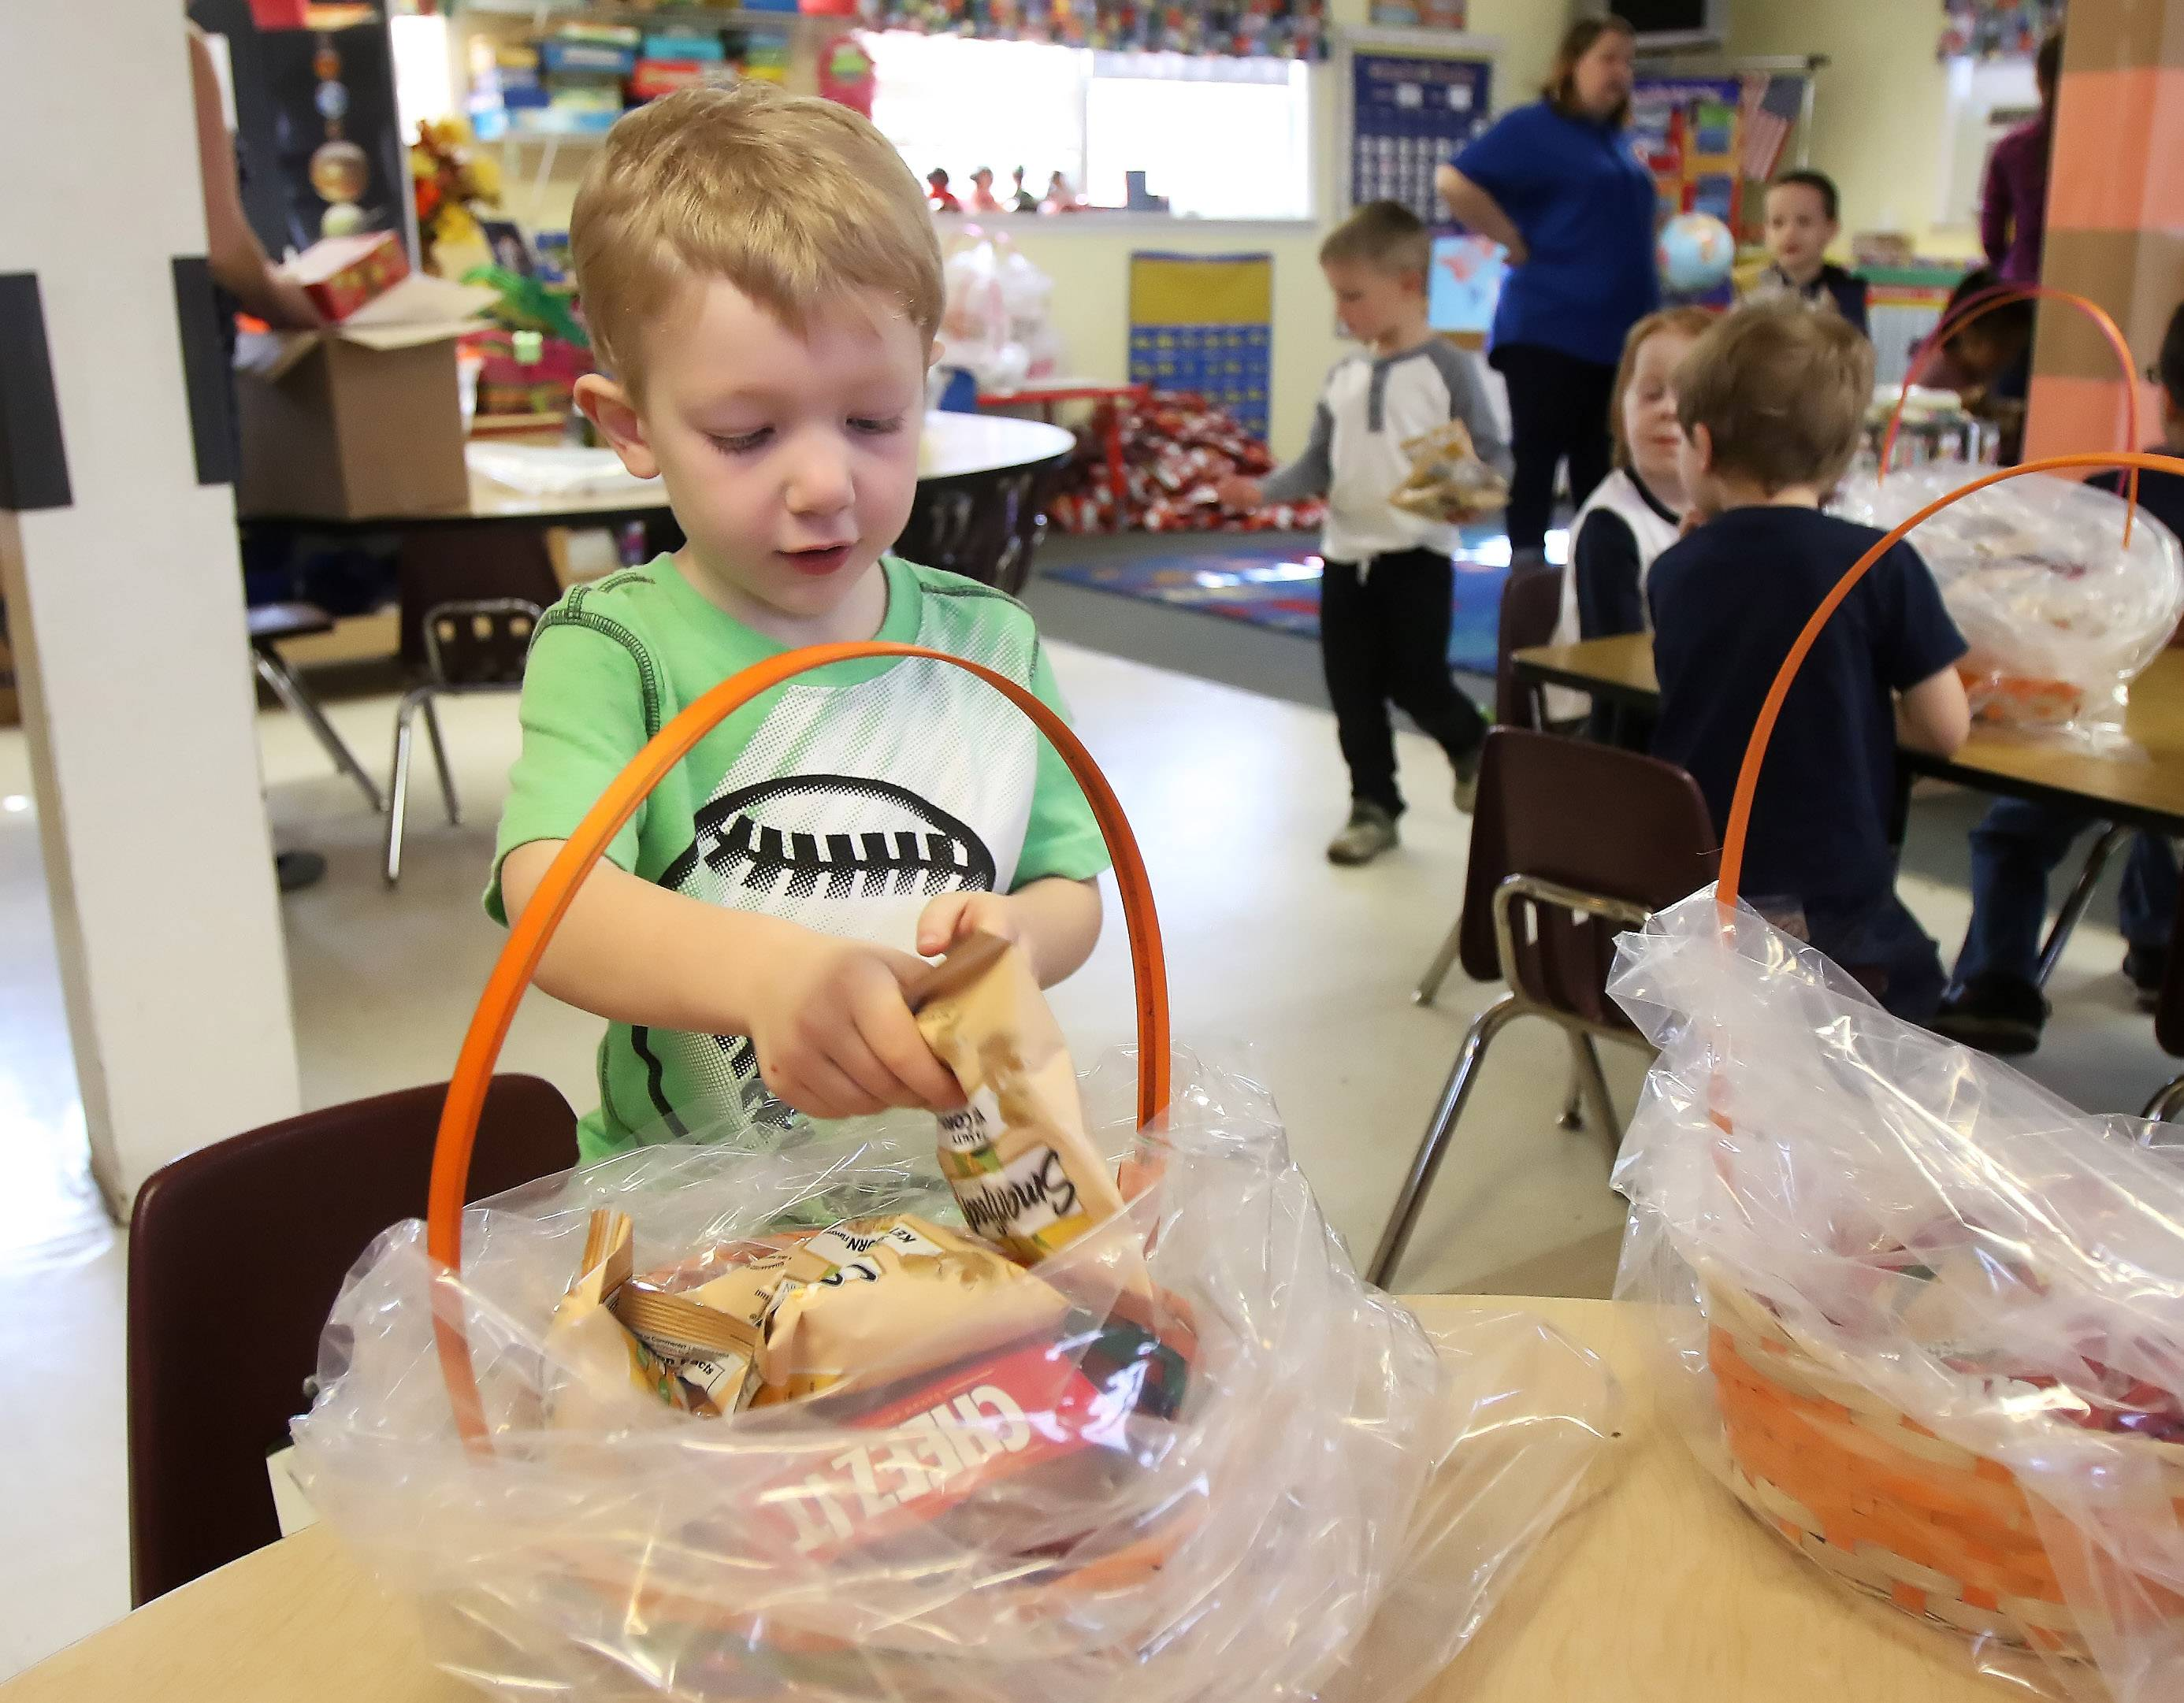 Preschooler Landon Bunkelman, 4, of Lake Villa fills an Easter basket Wednesday at the Lindenhurst Early Childhood Center. More than 400 baskets will be given to local charities and hospitals for kids who are battling illness or in need.